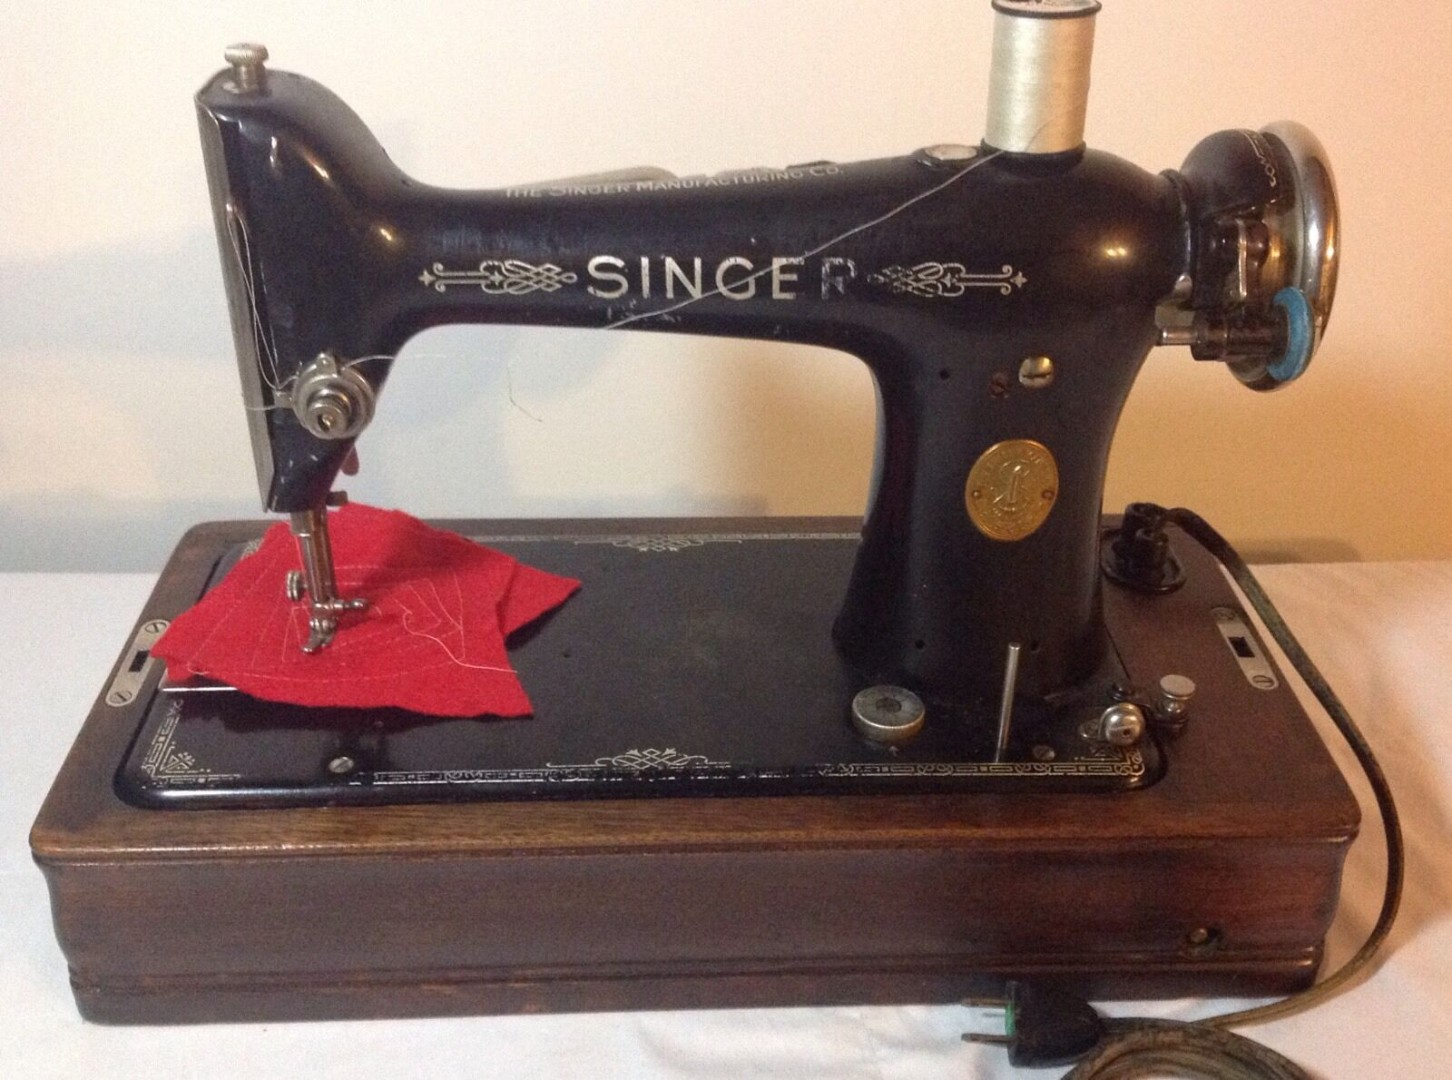 Vintage-Working-Singer-101-4-portable-sewing-machine-with.jpg